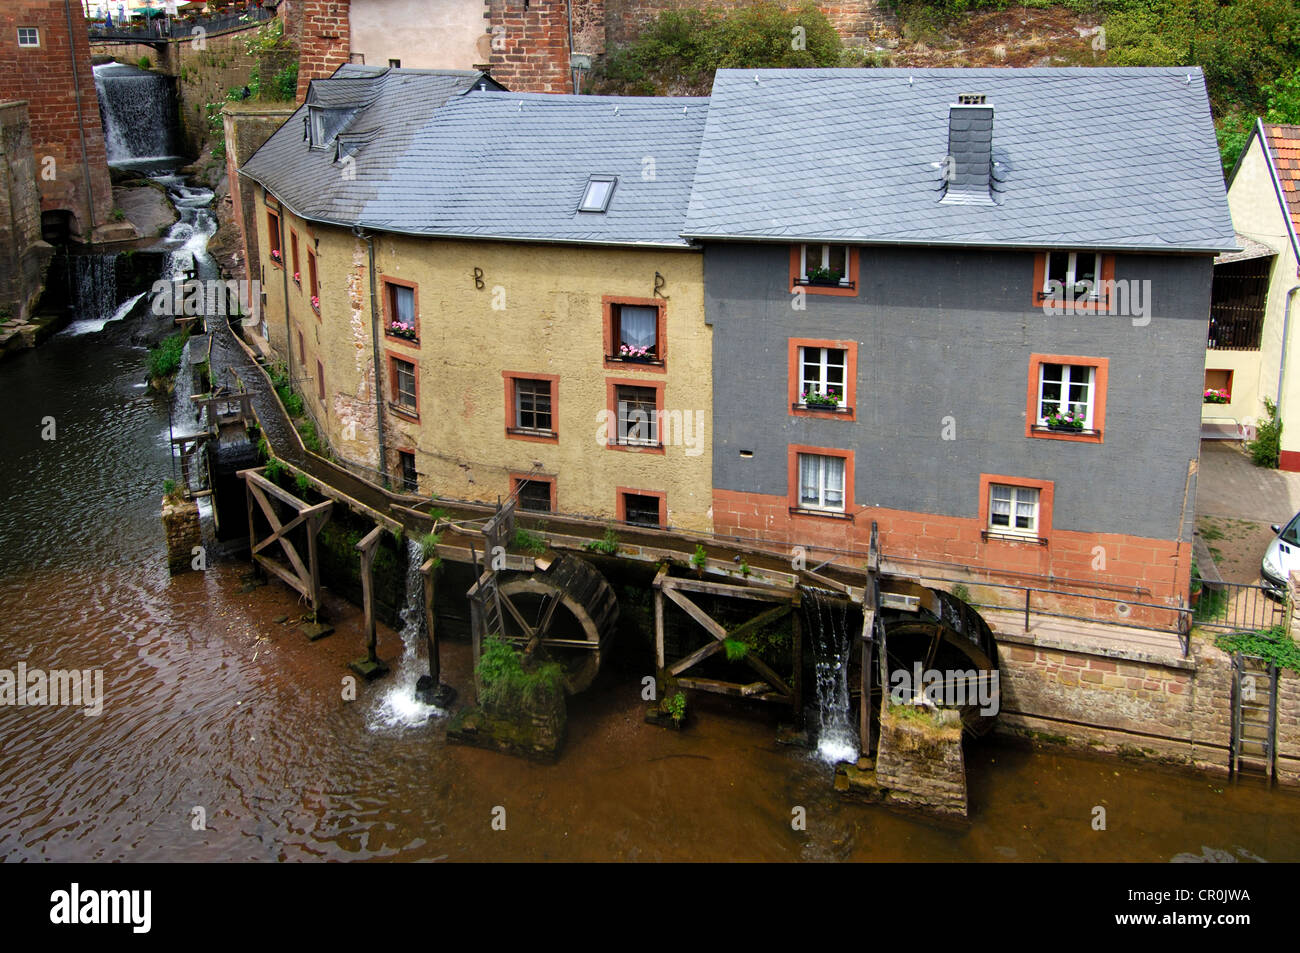 Mill museum Hackenberger Muehle, water mill complex of three staggered mills, Saarburg, Rhineland-Palatinate, Germany, - Stock Image